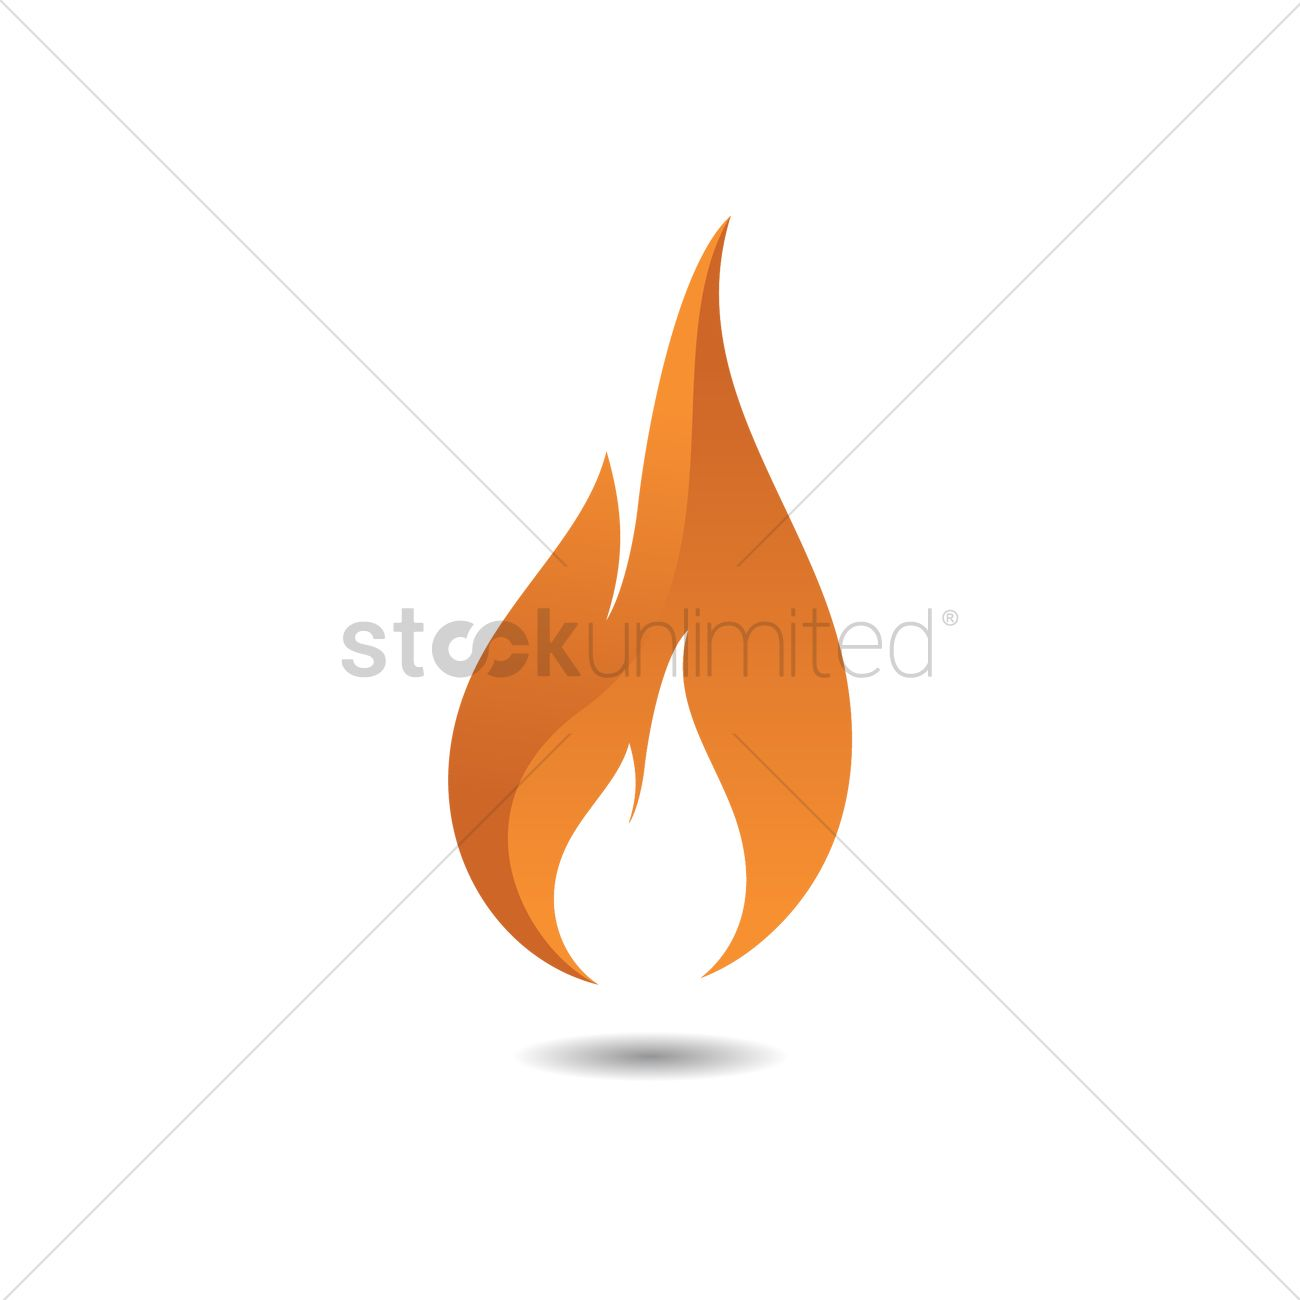 flame logo design vector image 1477186 stockunlimited